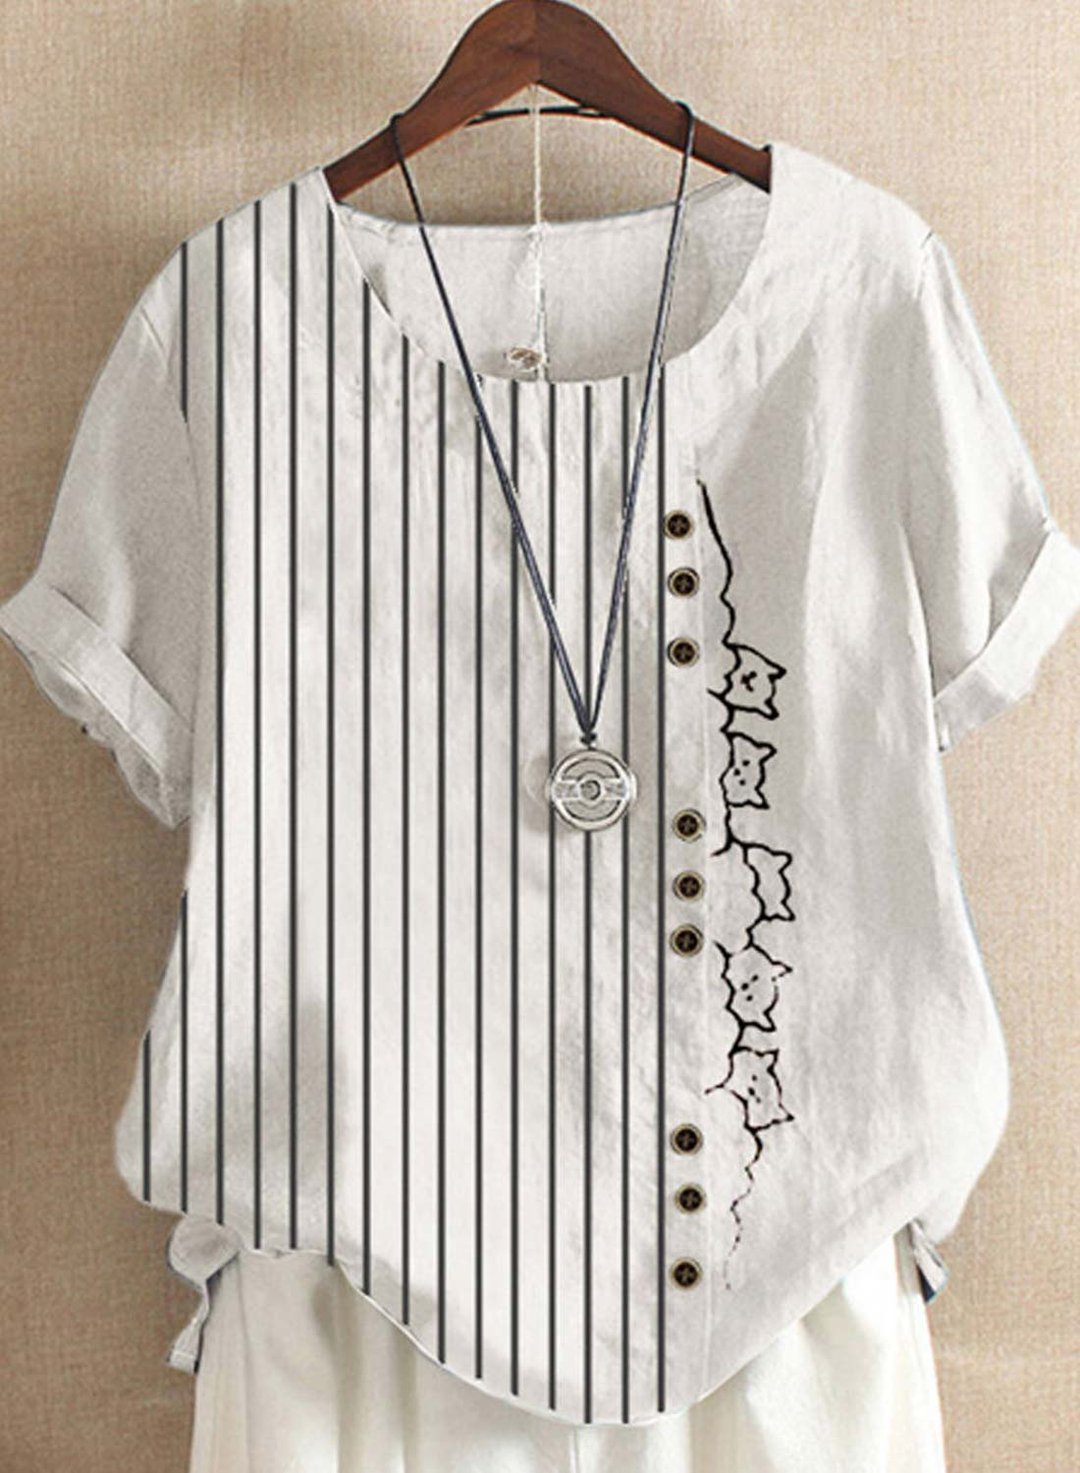 White Striped Cartoon Printed Button O-Neck Short Sleeve T-shirt LC255759-1